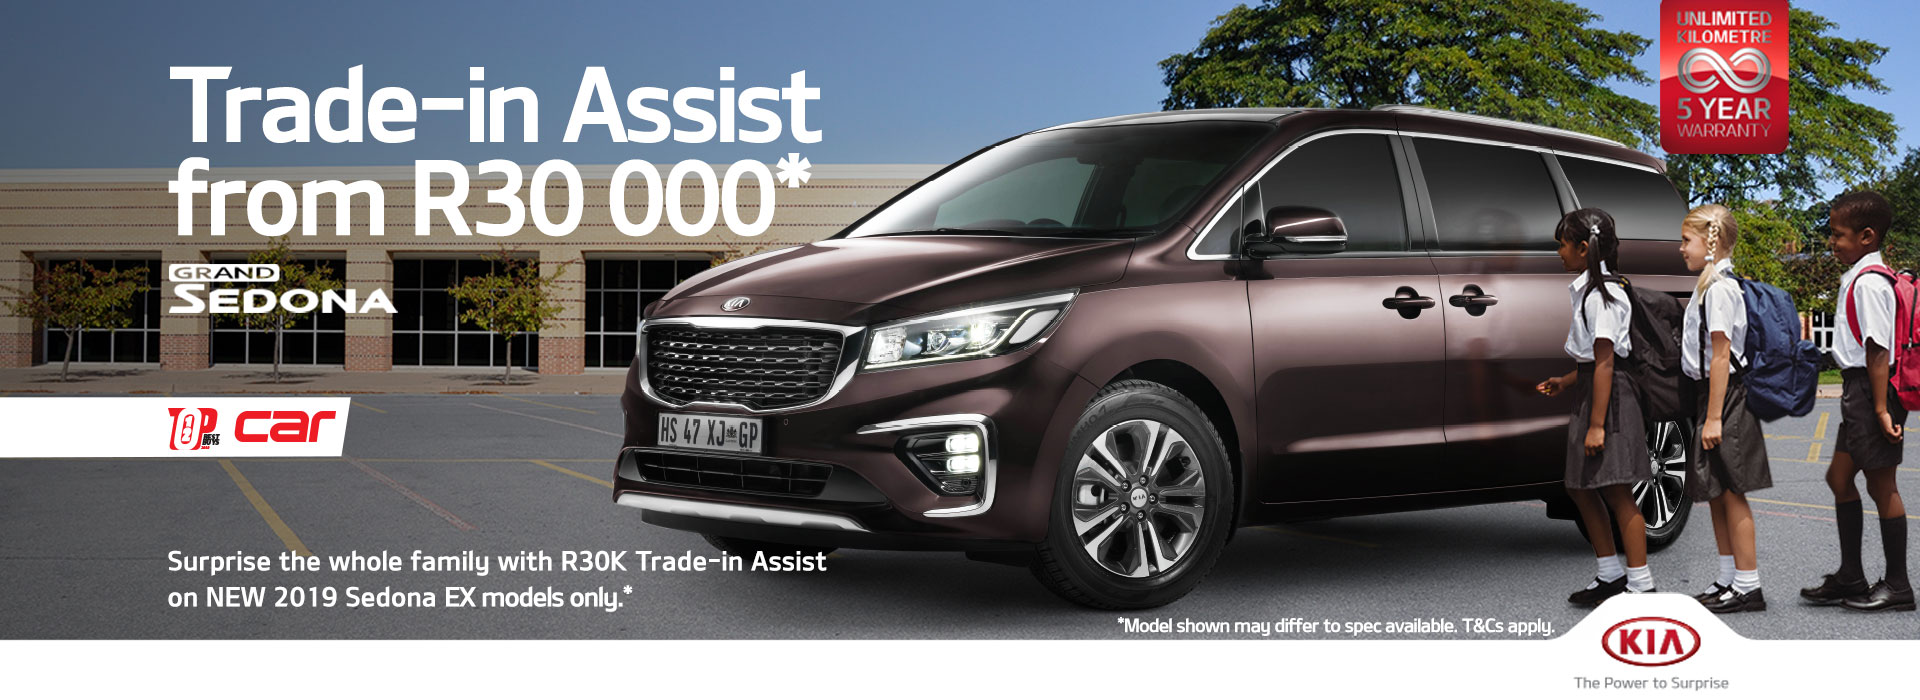 Grand Sedona - R20 000 Trade In Assistance